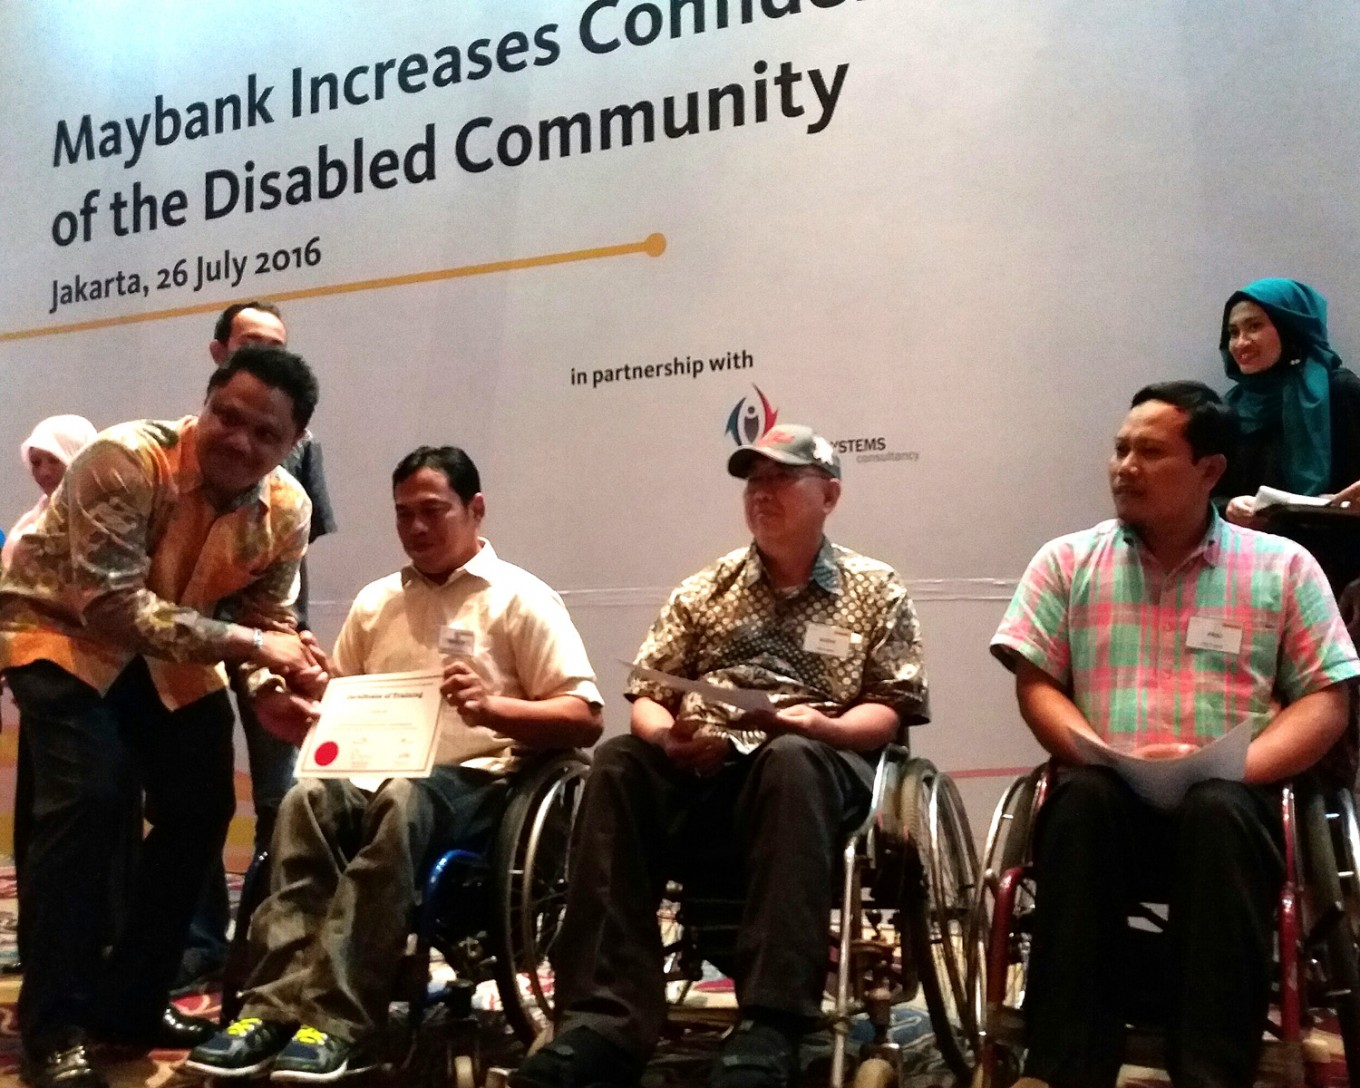 Maybank helps disabled people increase income